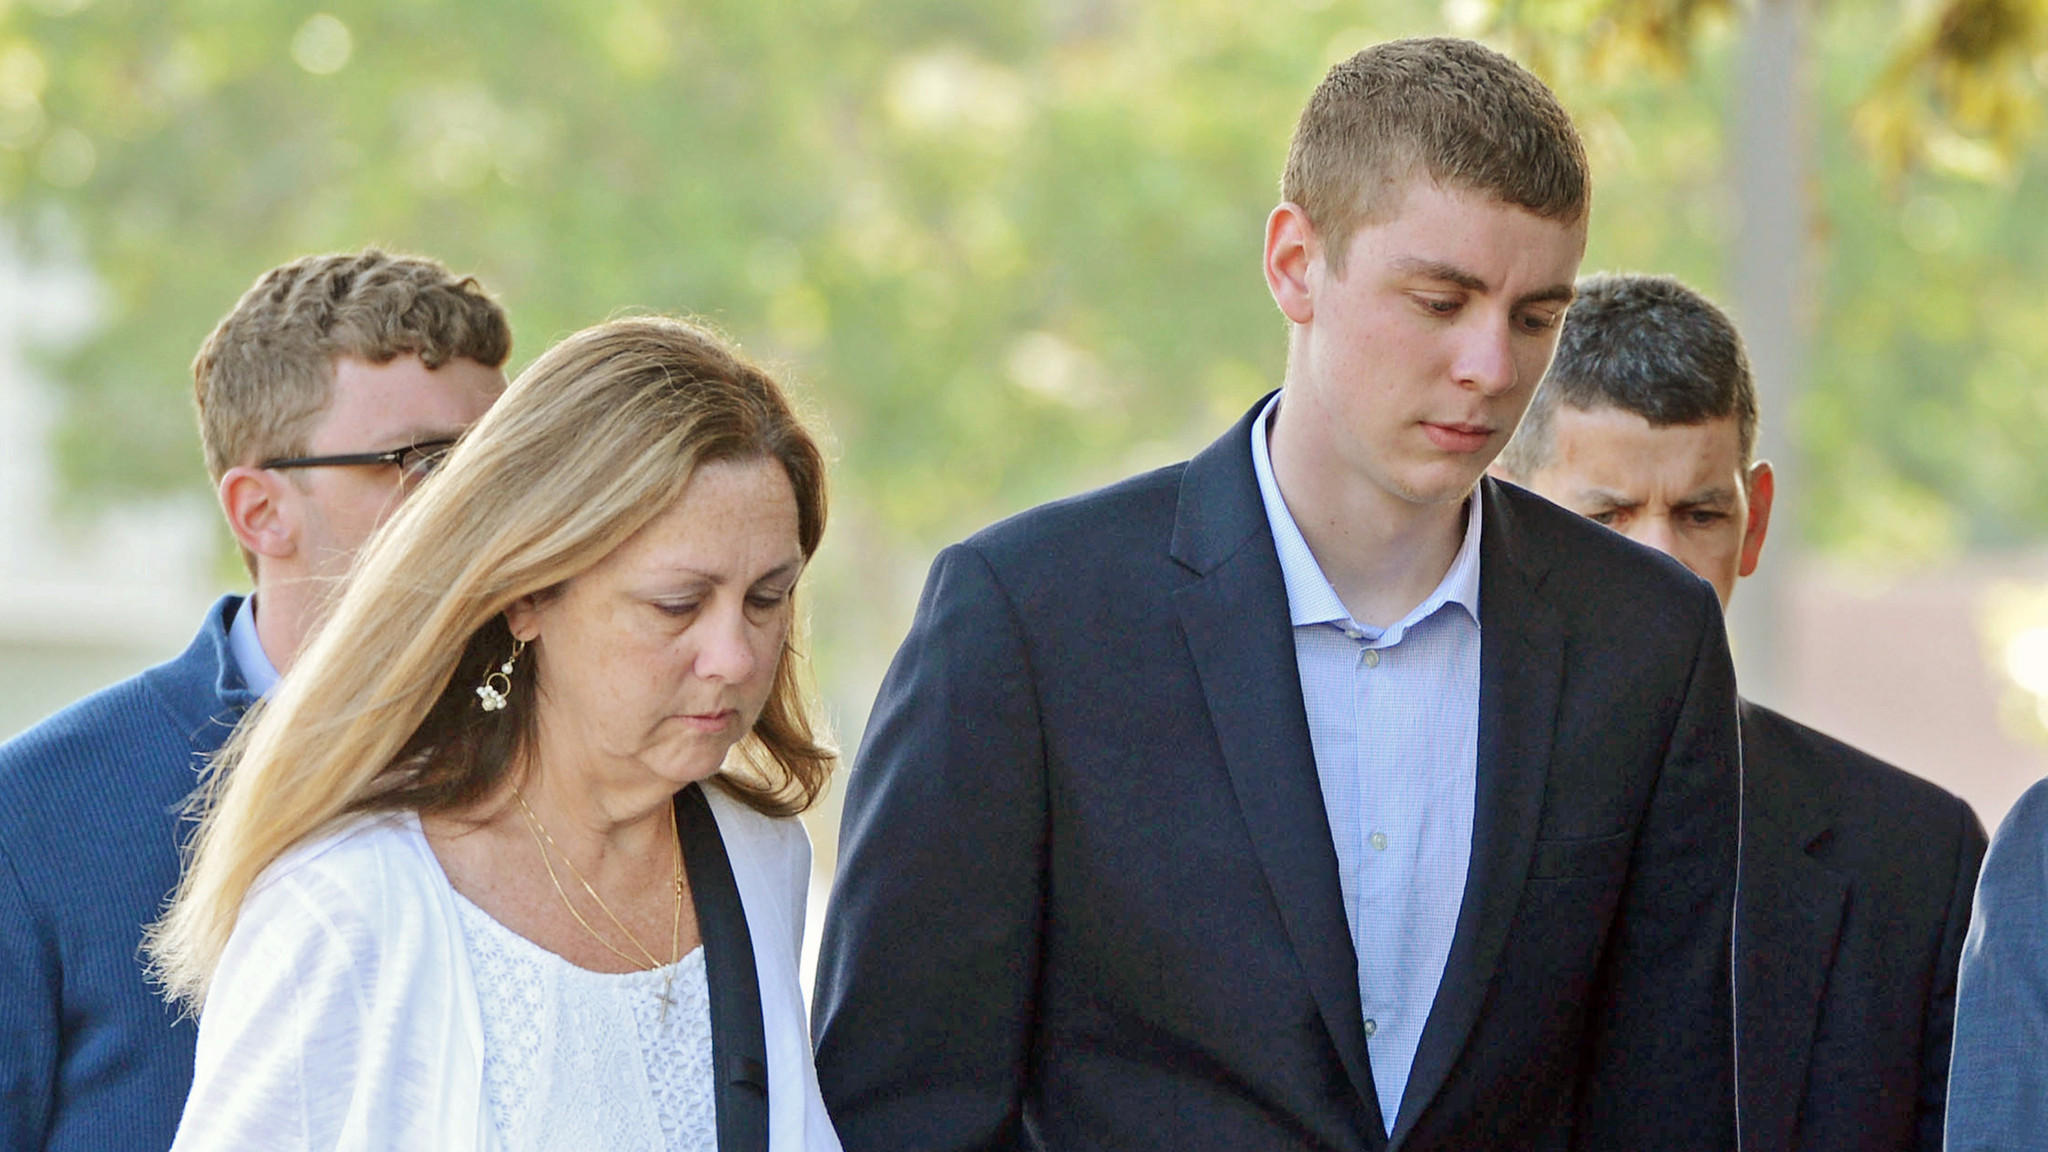 Brock Turner, right, was convicted of sexually assaulting a woman after a Stanford fraternity party. (Dan Honda / Bay Area News Group)